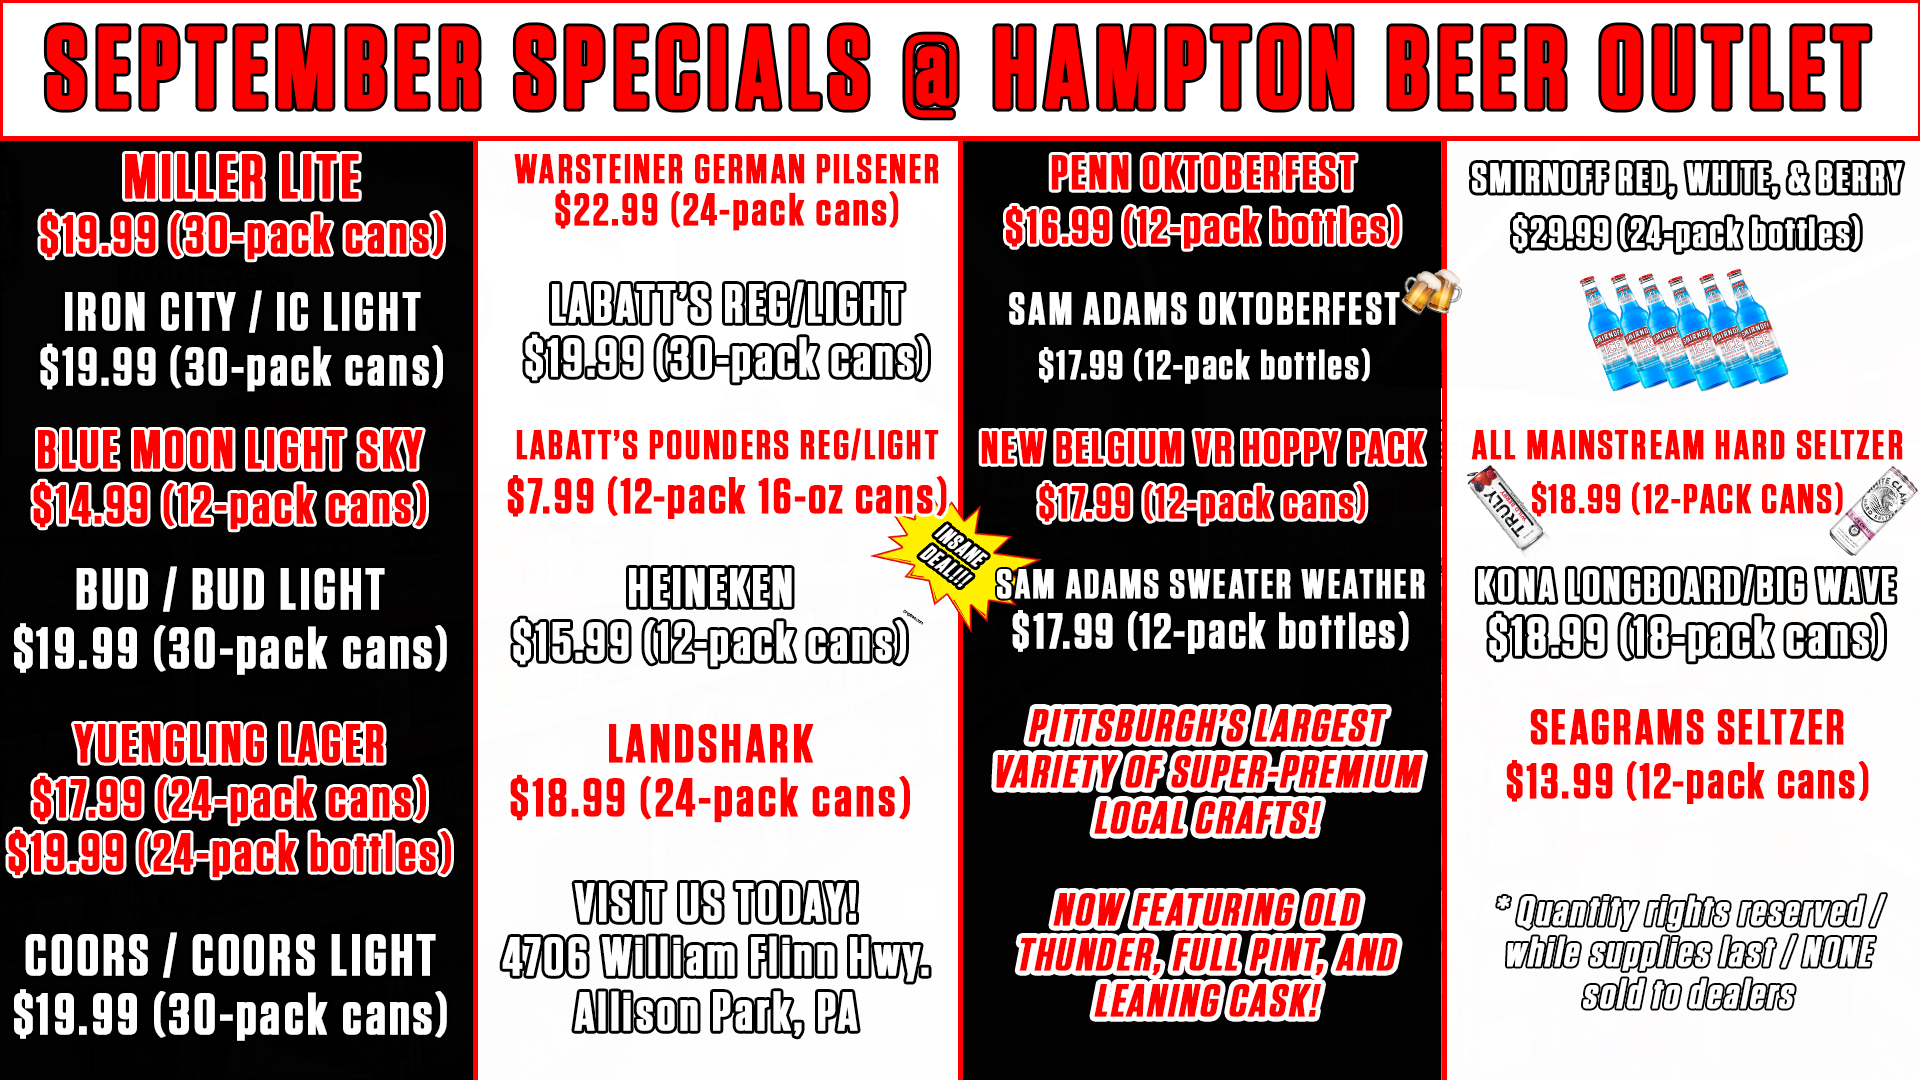 Hampton-beer-outlet-pittsburgh-specials-september-2021